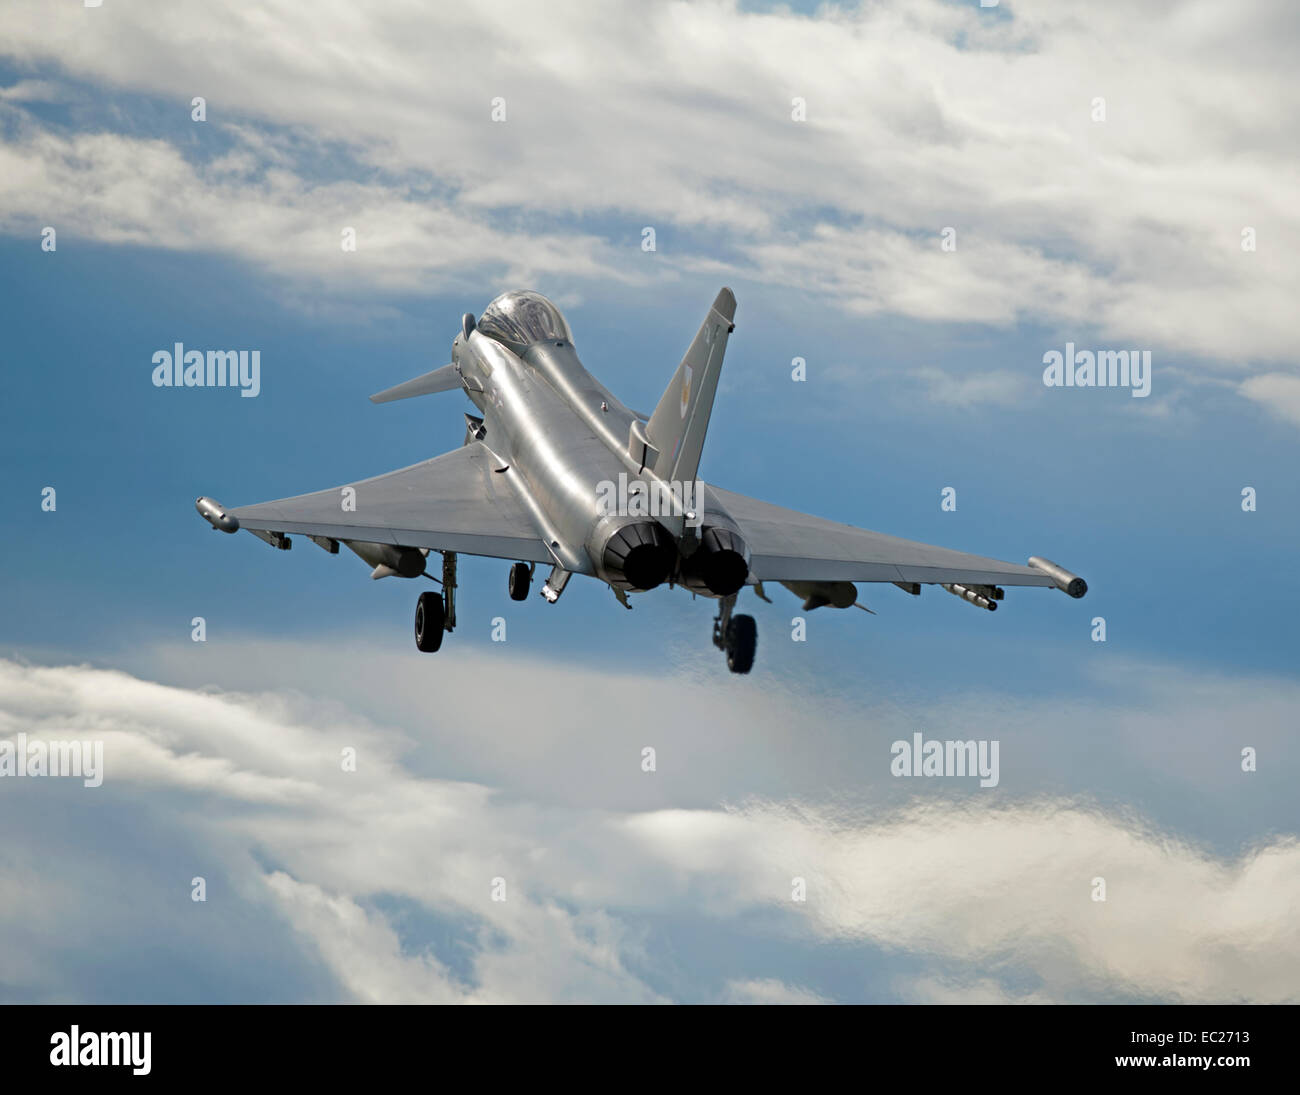 RAF 1 Squadron Eurofighter Typhoon FRG4 Take Off.  SCO 9295 - Stock Image